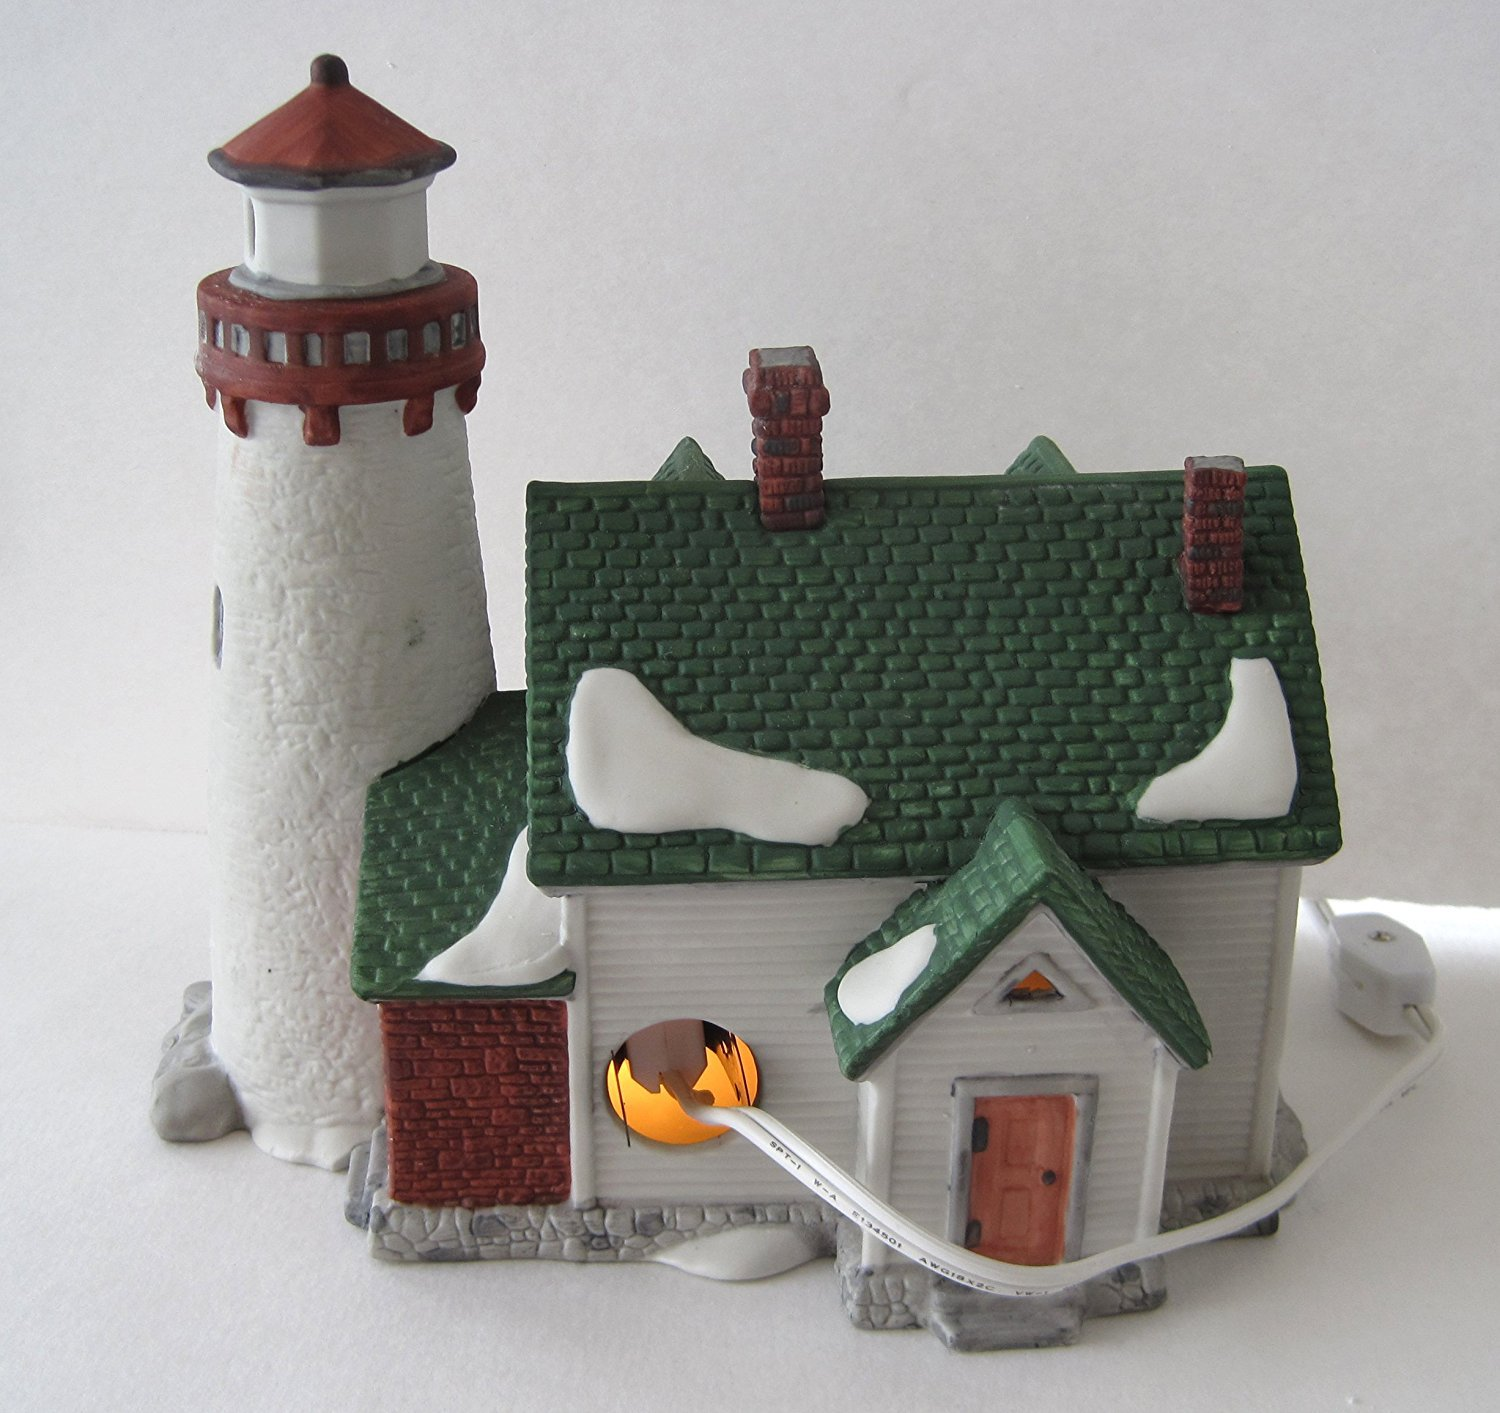 Dept 56 Retired Craggy Cove Lighthouse Item #59307 Department 56 New England Village